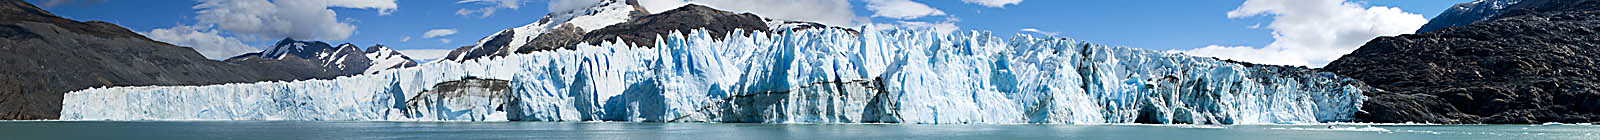 Panorama, stiched photography, of O'Higgins glacier, Chile - Banner